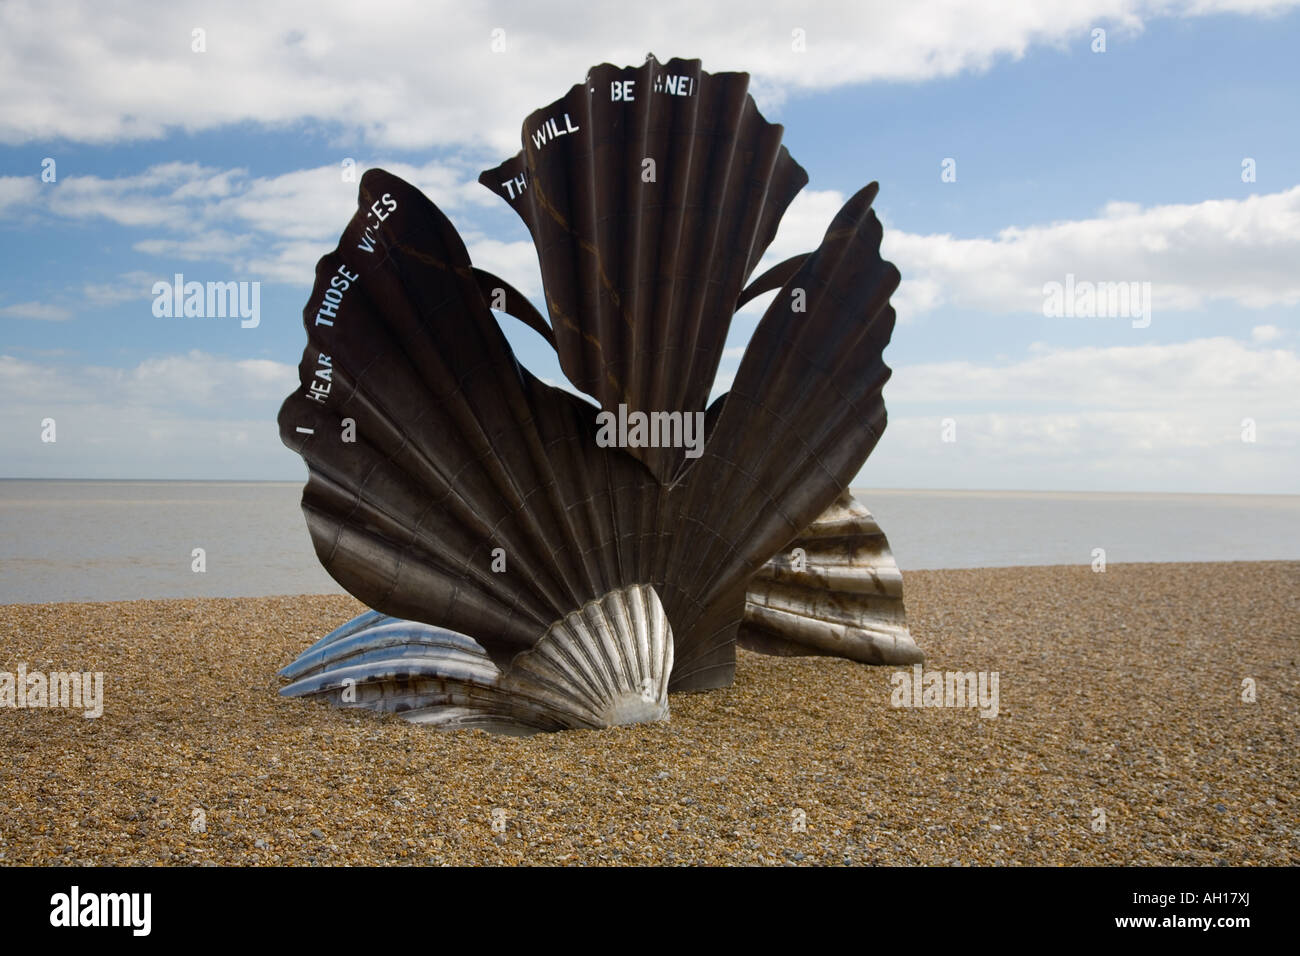 Aldeburgh, Suffolk, England, 'Scallop' shell sculpture by Maggi Hambling in honour of Benjamin Britten - Stock Image